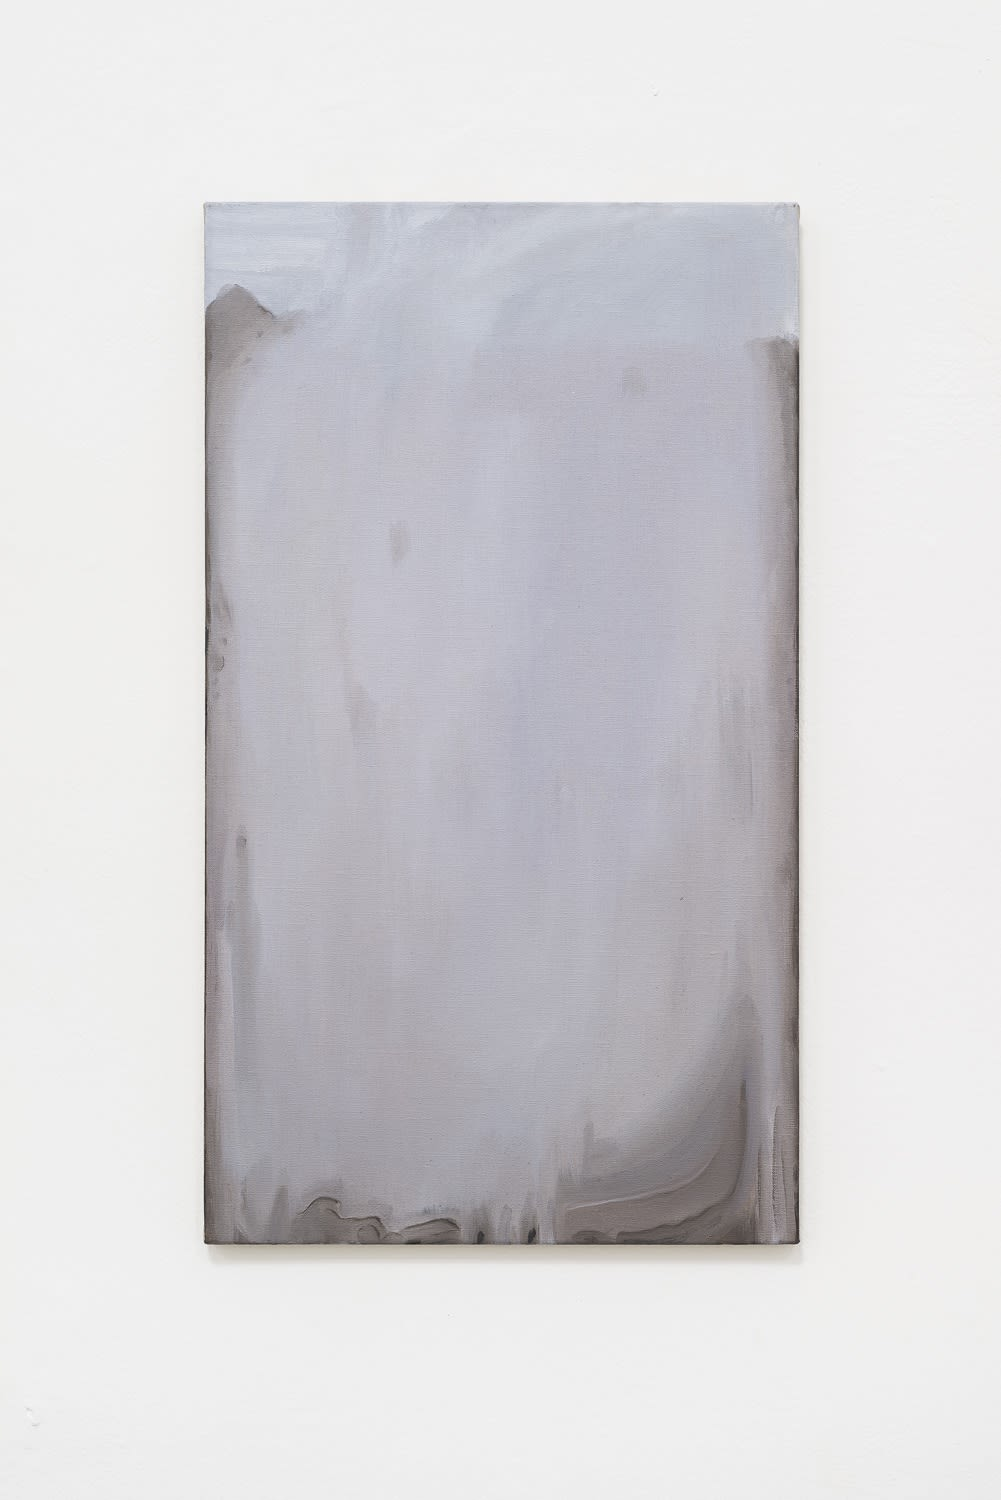 Michele Tocca Vapour and thick fog, 2021